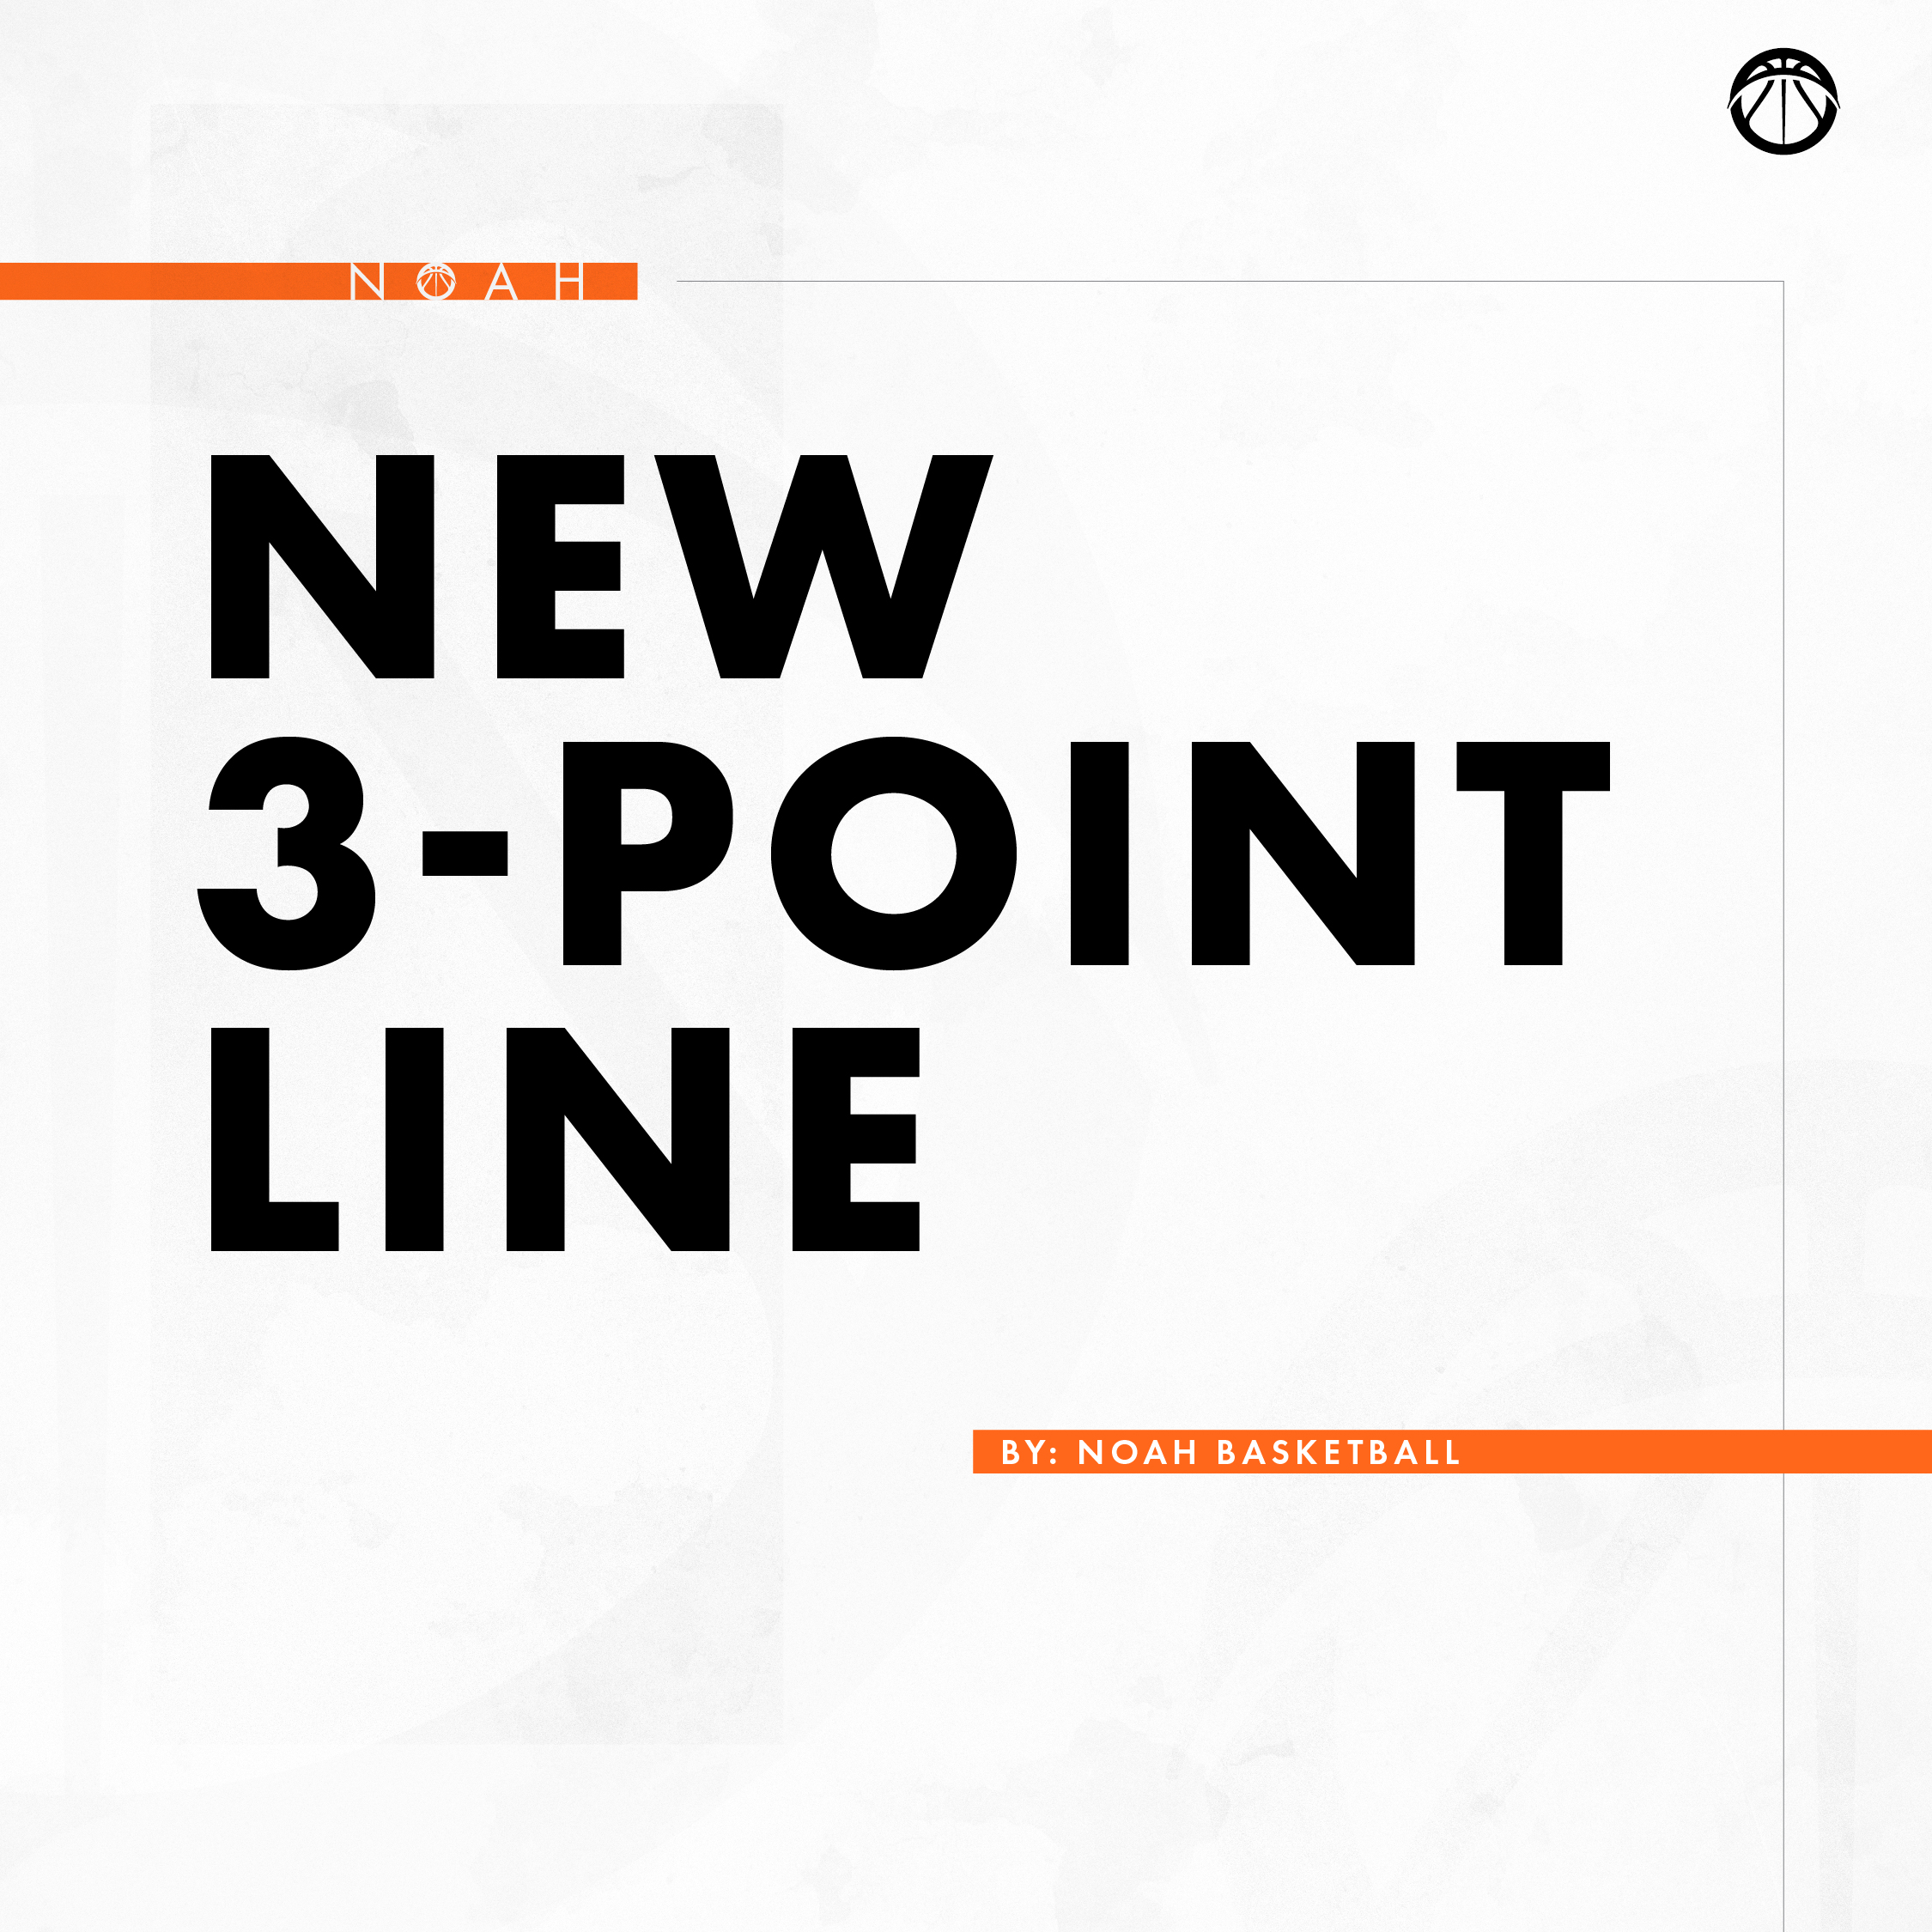 How the New 3-point Line is Affecting Early NCAA Performances